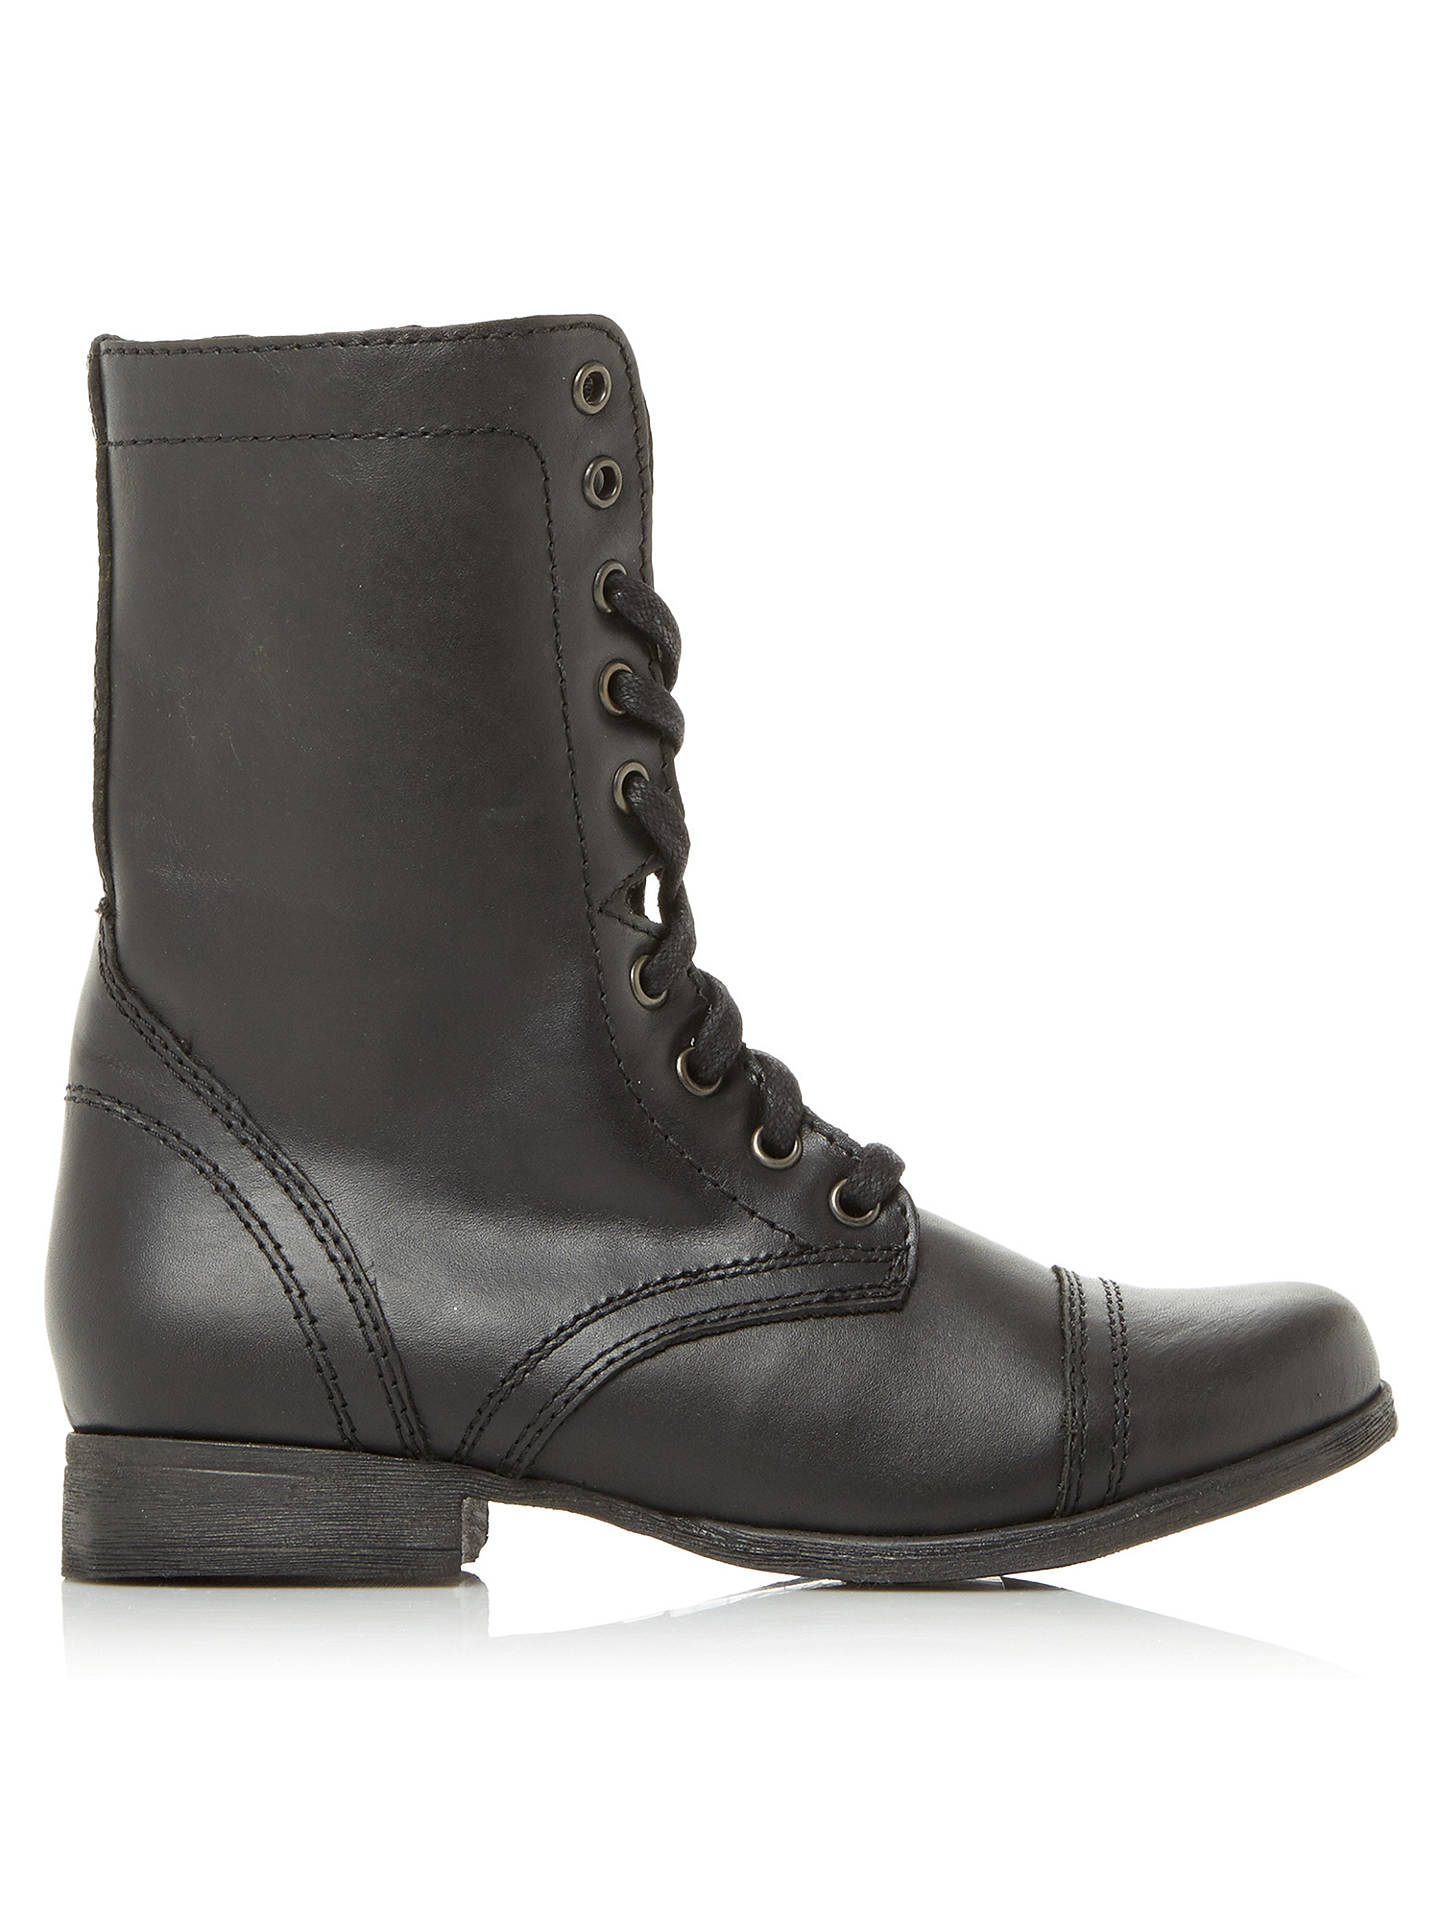 feb88f74f27 Steve Madden Troopa Lace Up Boots at John Lewis & Partners